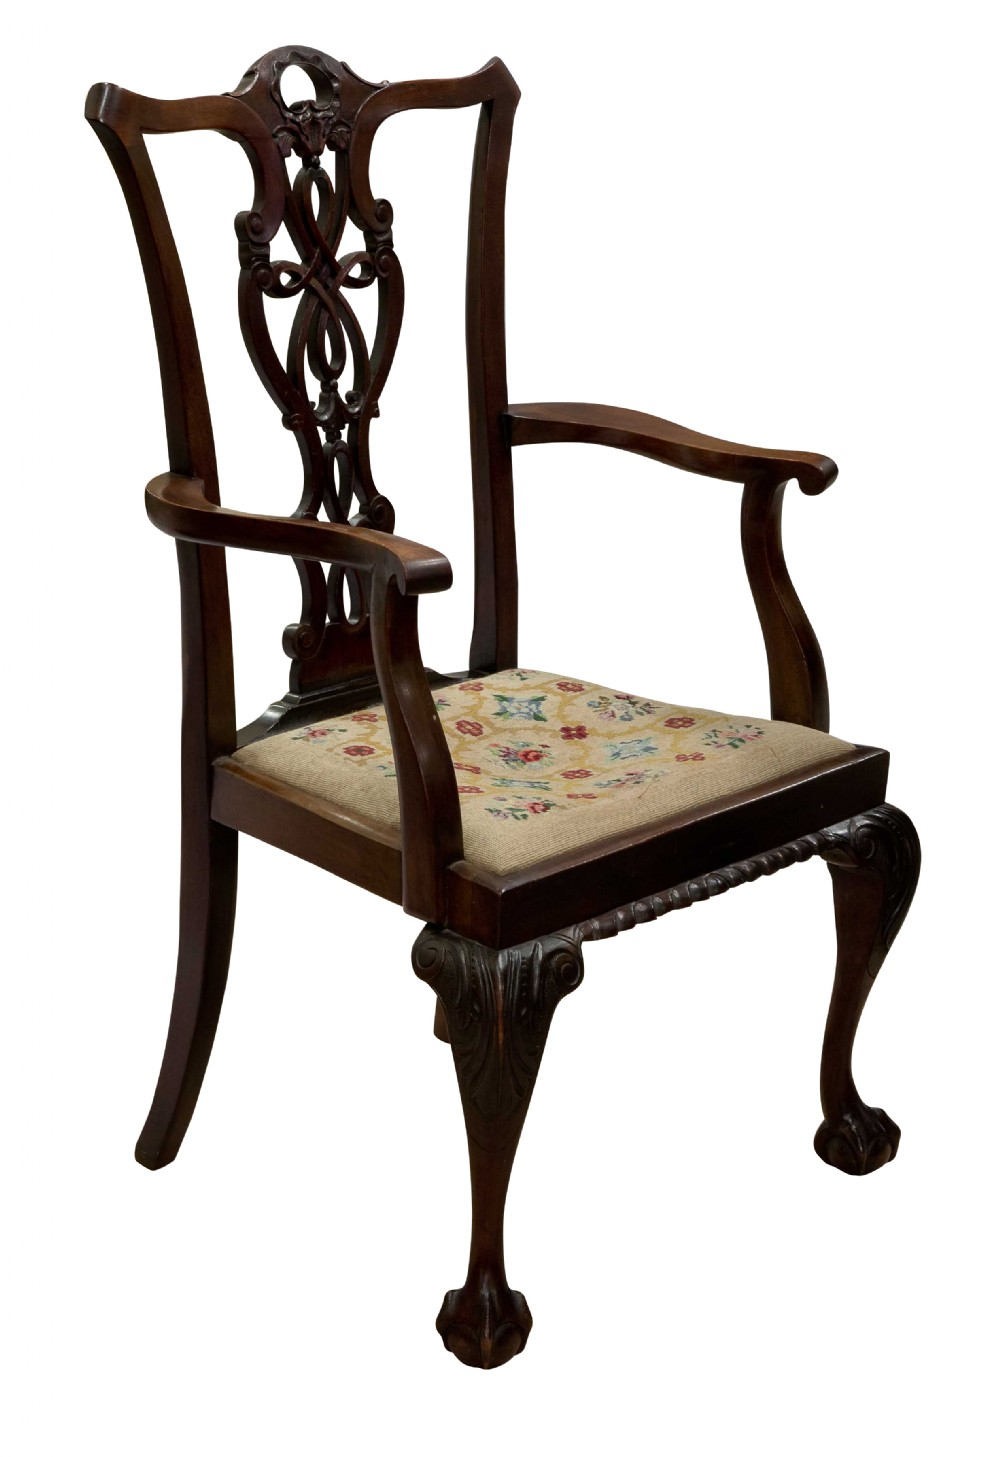 mahogany chippendale style carver chair on ball and claw legs c1900